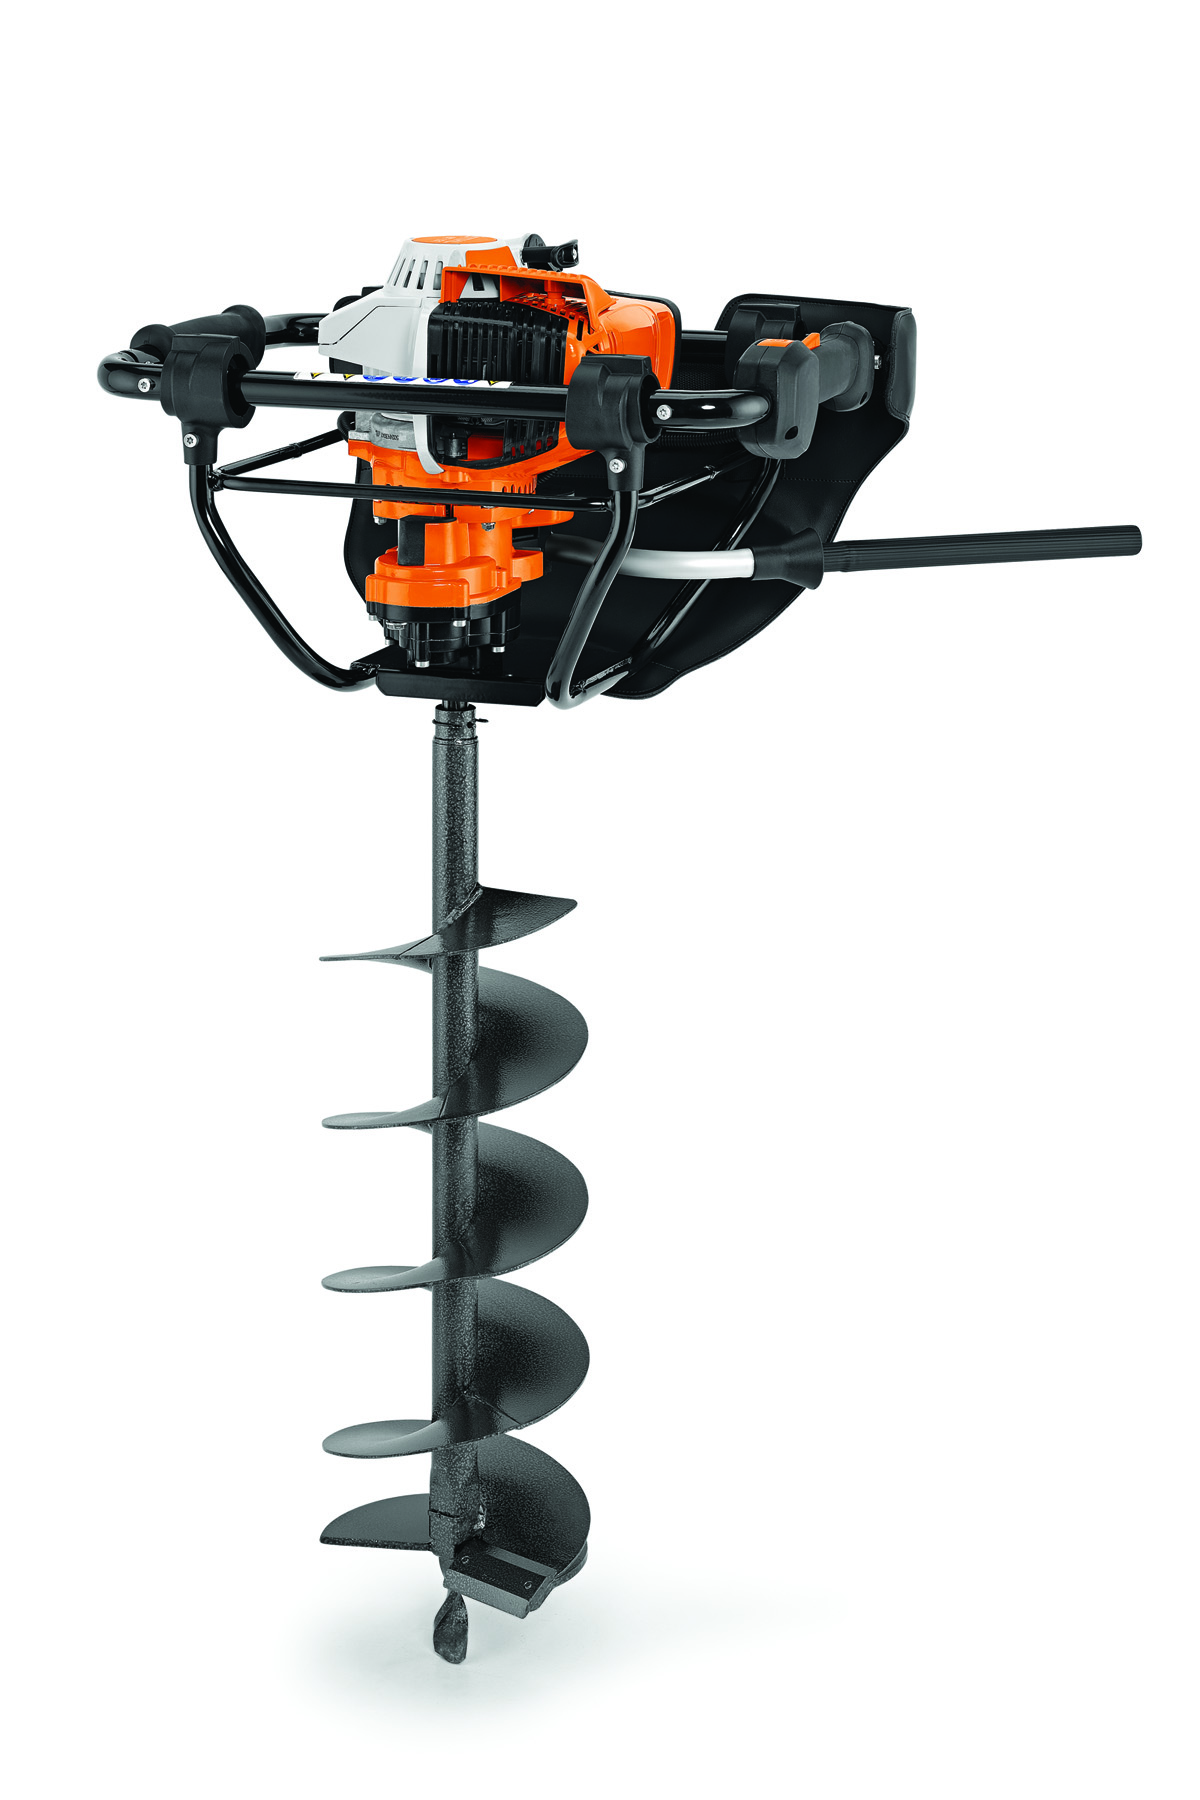 STIHL Launches New High Performance Earth/Ice Auger   STIHL USA